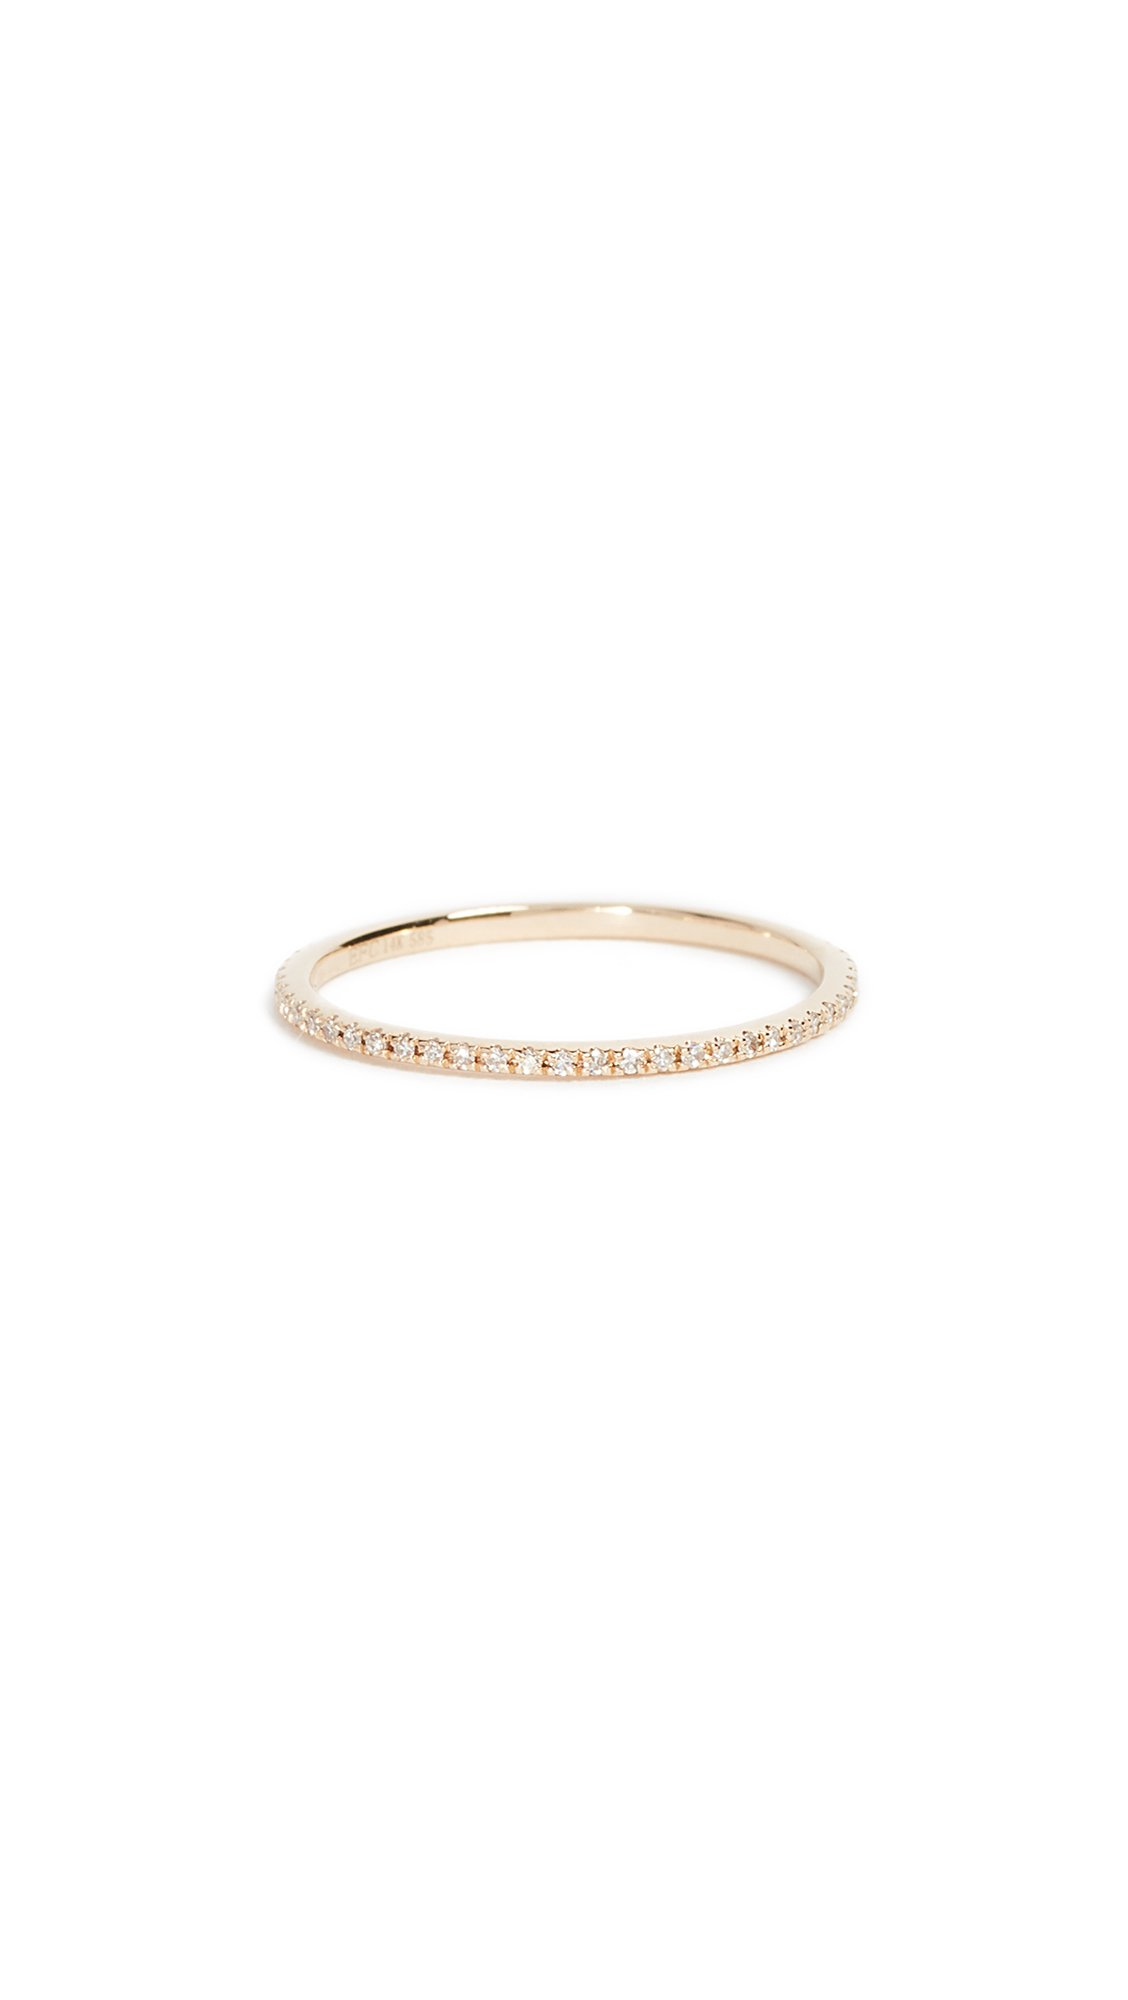 EF Collection Women's 14k Gold Diamond Eternity Stack Ring, Yellow Gold/Clear, 7